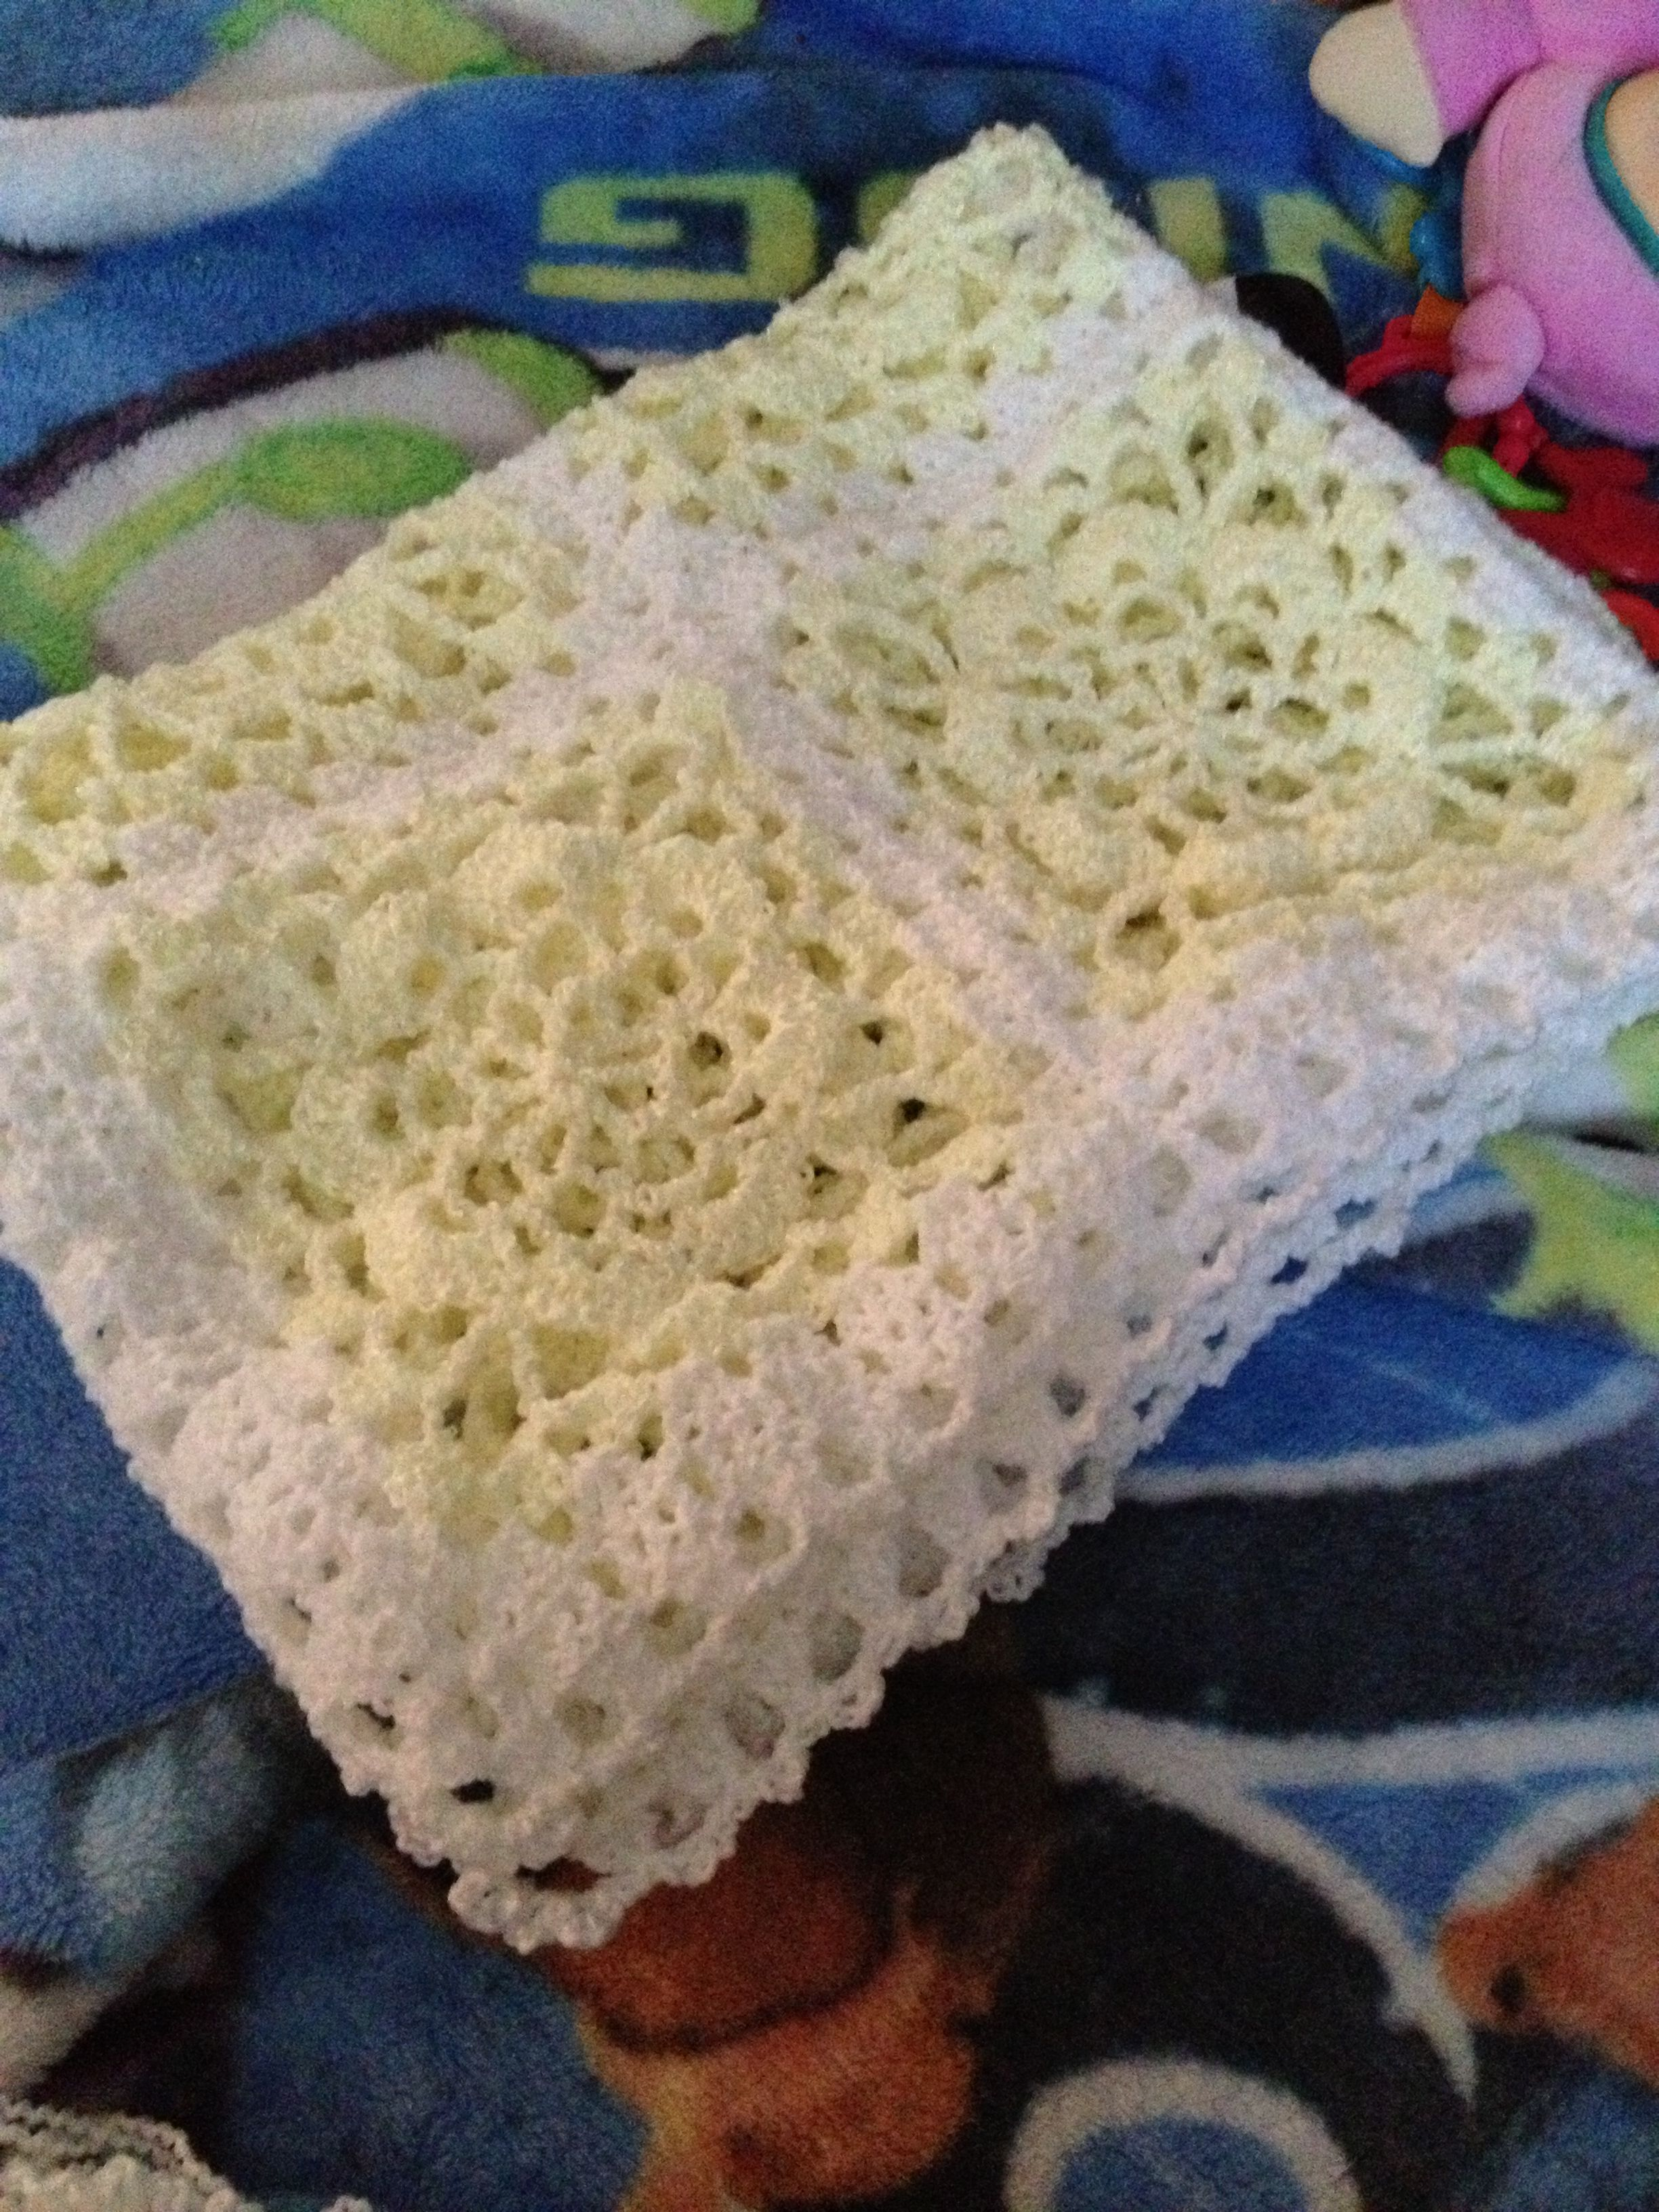 Lacy granny square crochet baby blanket | tejidos | Pinterest ...